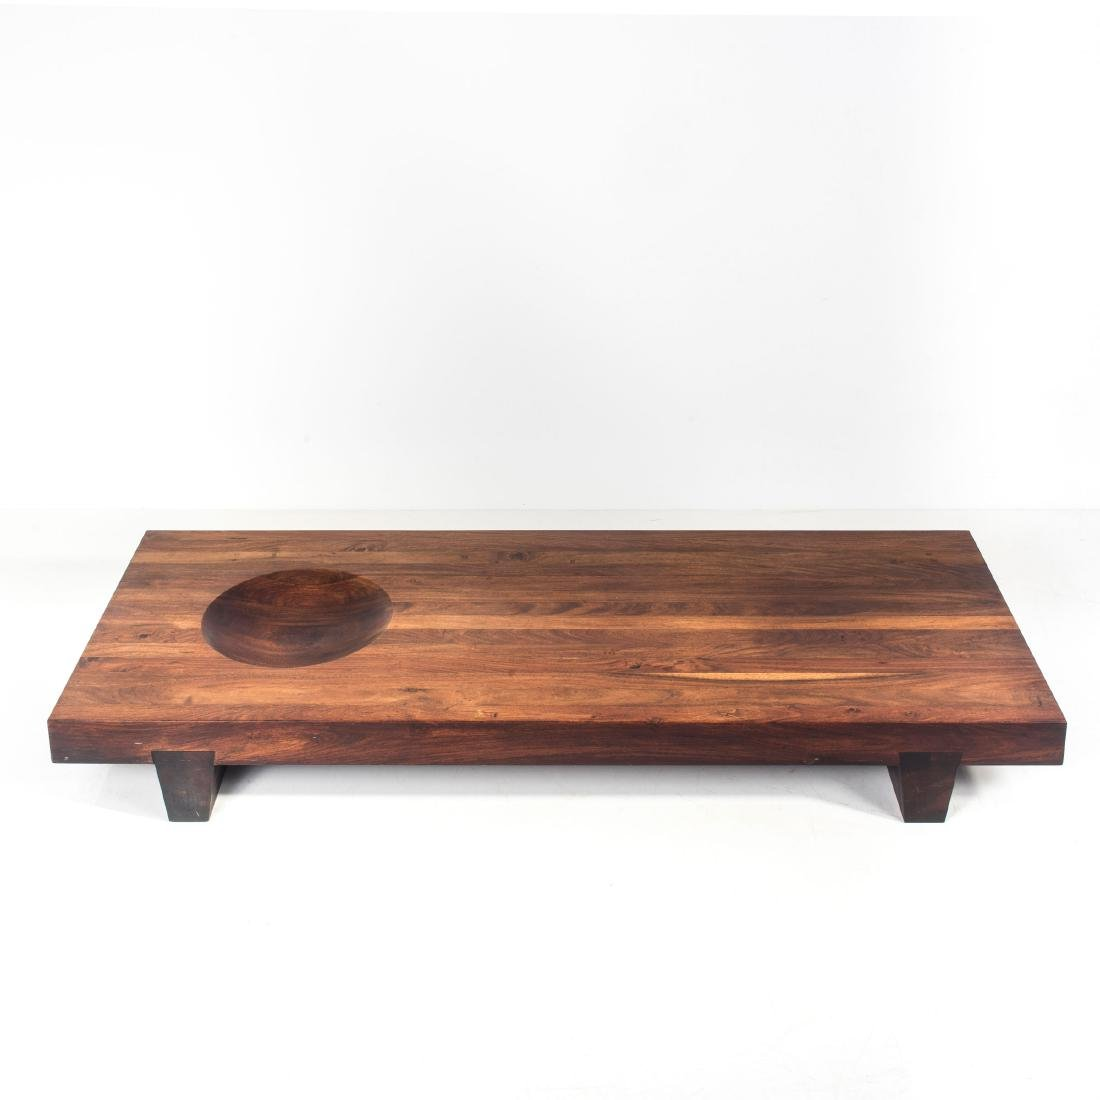 Table, c. 1960 - 2